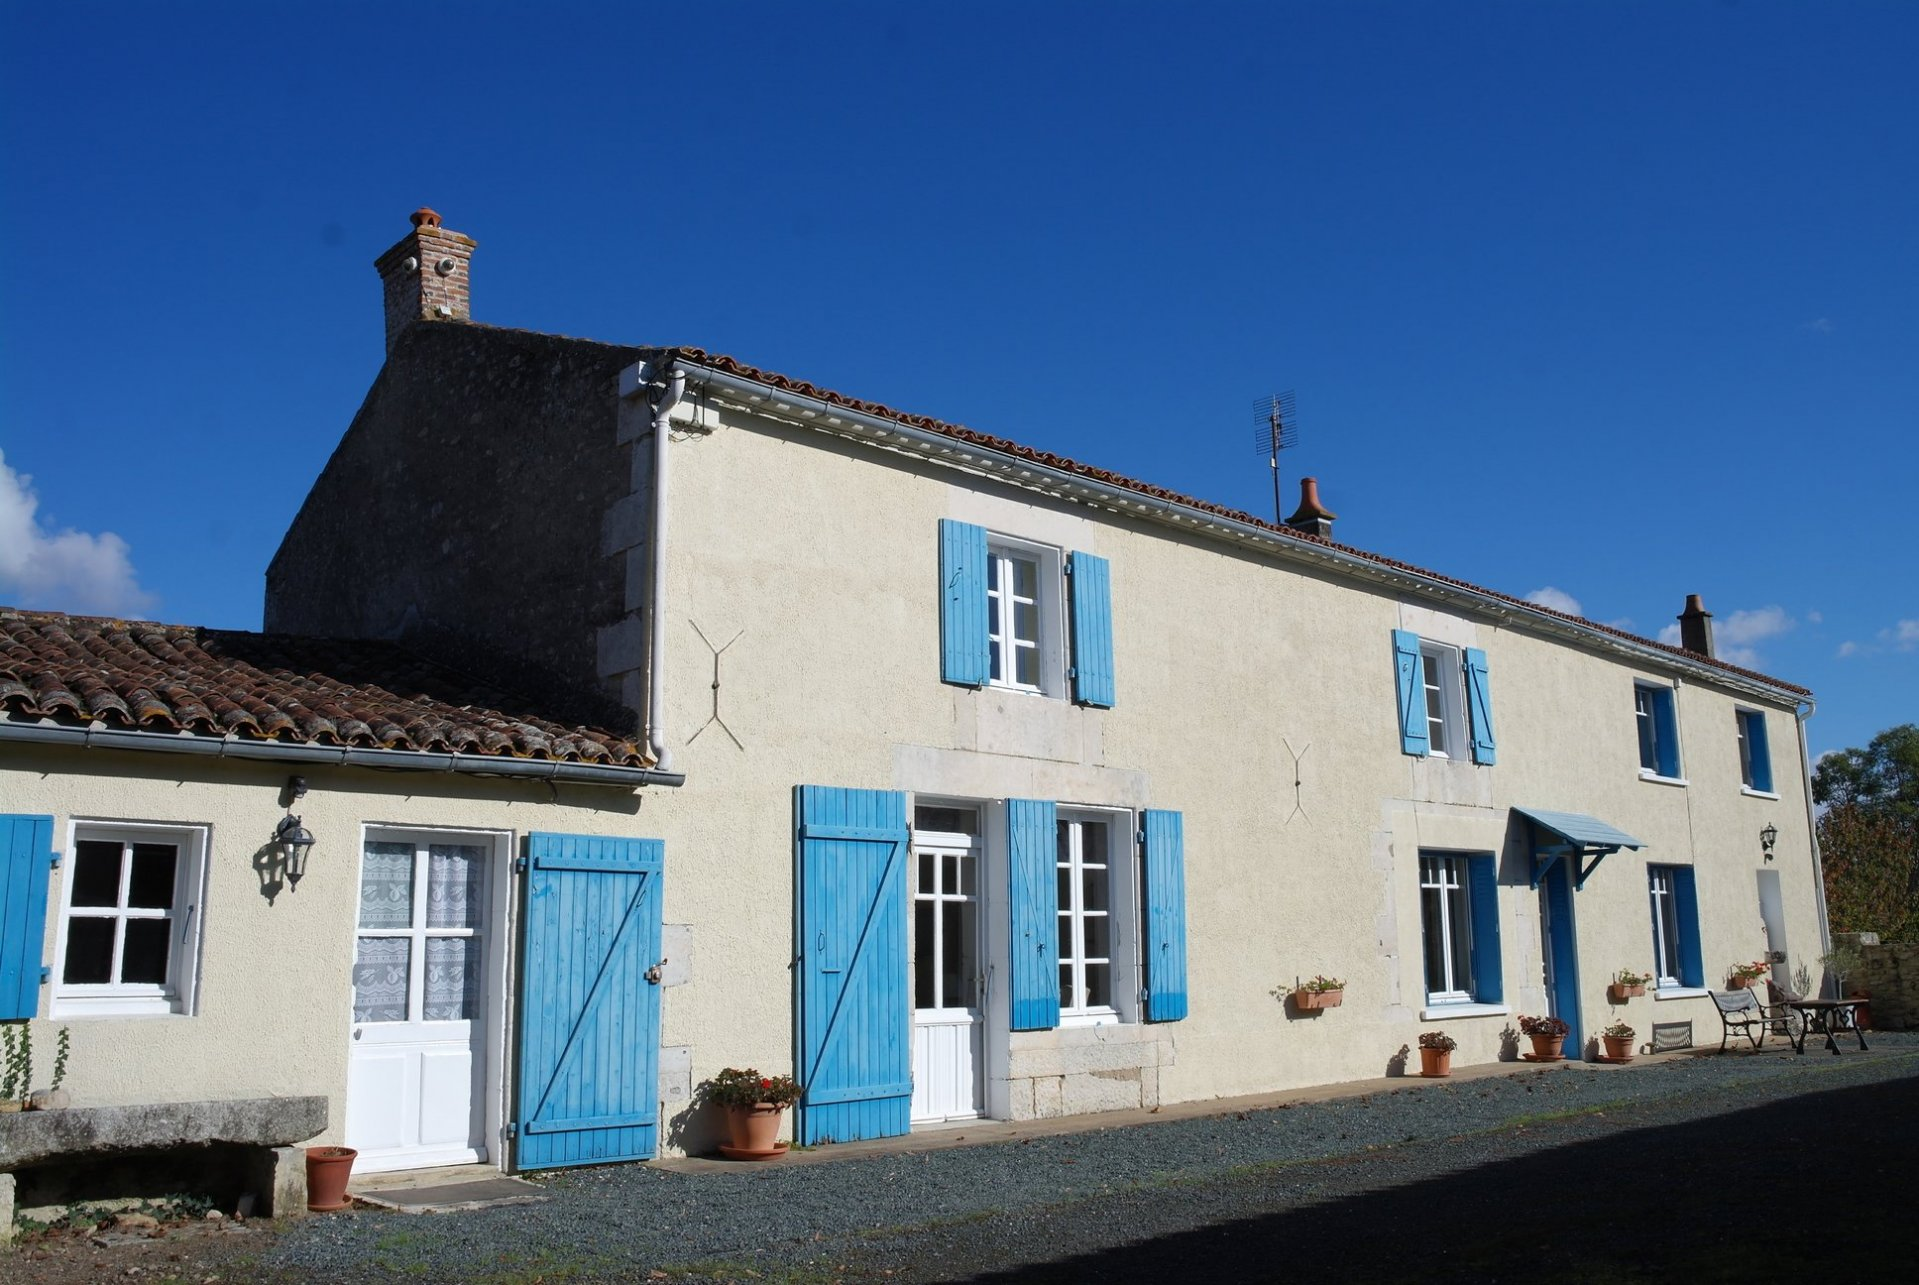 Spacious, traditional 4 bed stone built farmhouse with pool, guest cottage and large gardens